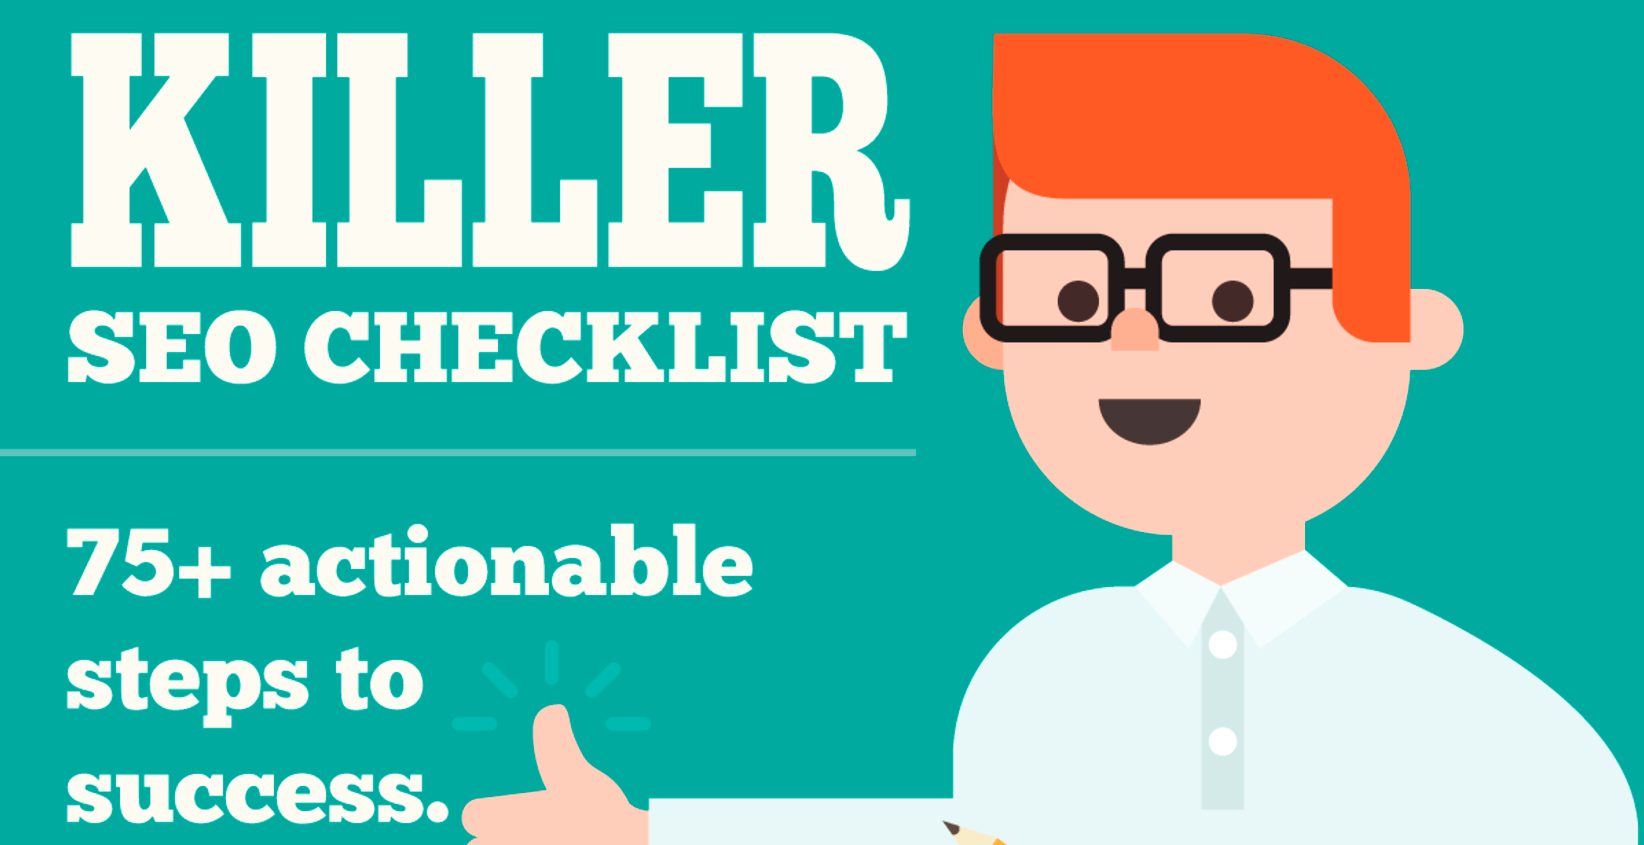 A Simple SEO Guide - 75+ Steps To Improve Your Search Traffic (Infographic)